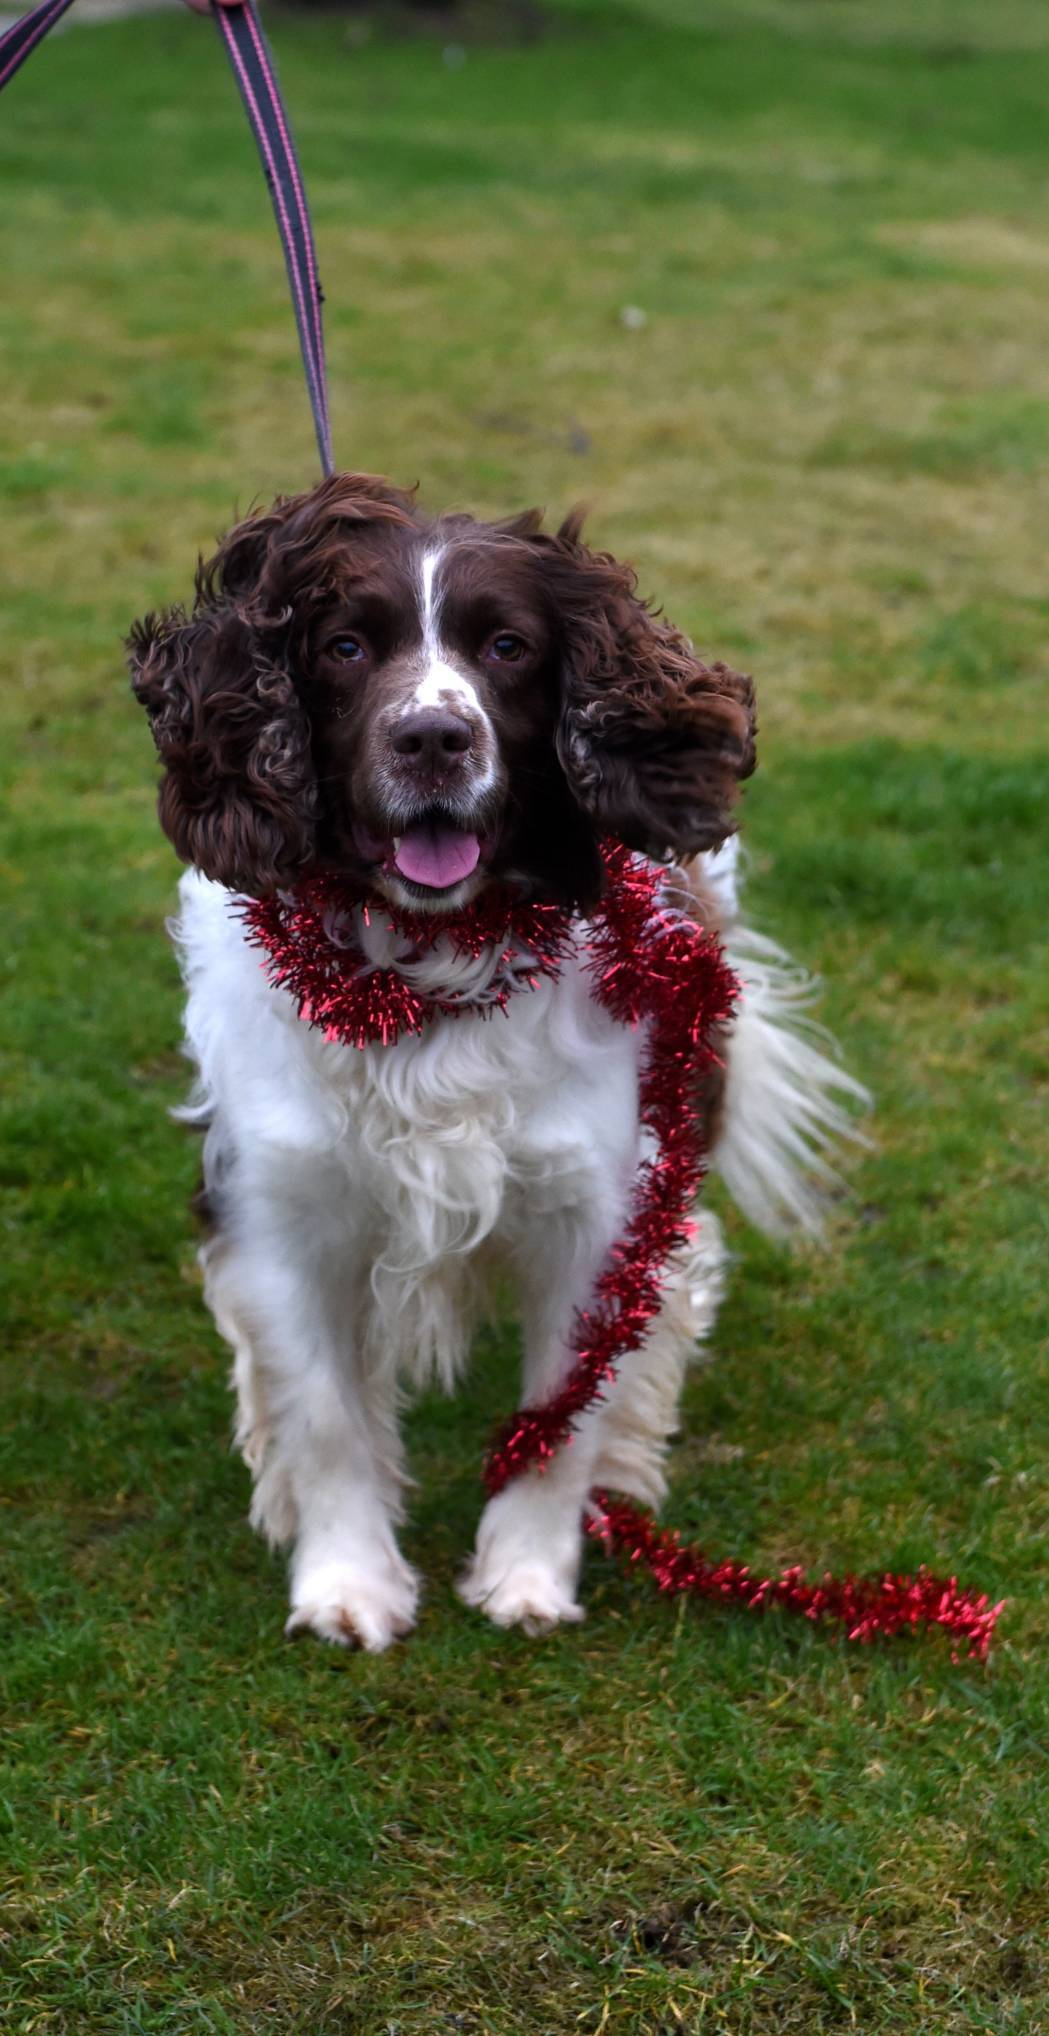 This springer spaniel, aged seven-and-a-half, is looking for an experienced owner to care for him. Jack is a friendly dog who will need a home with no other pets or children.